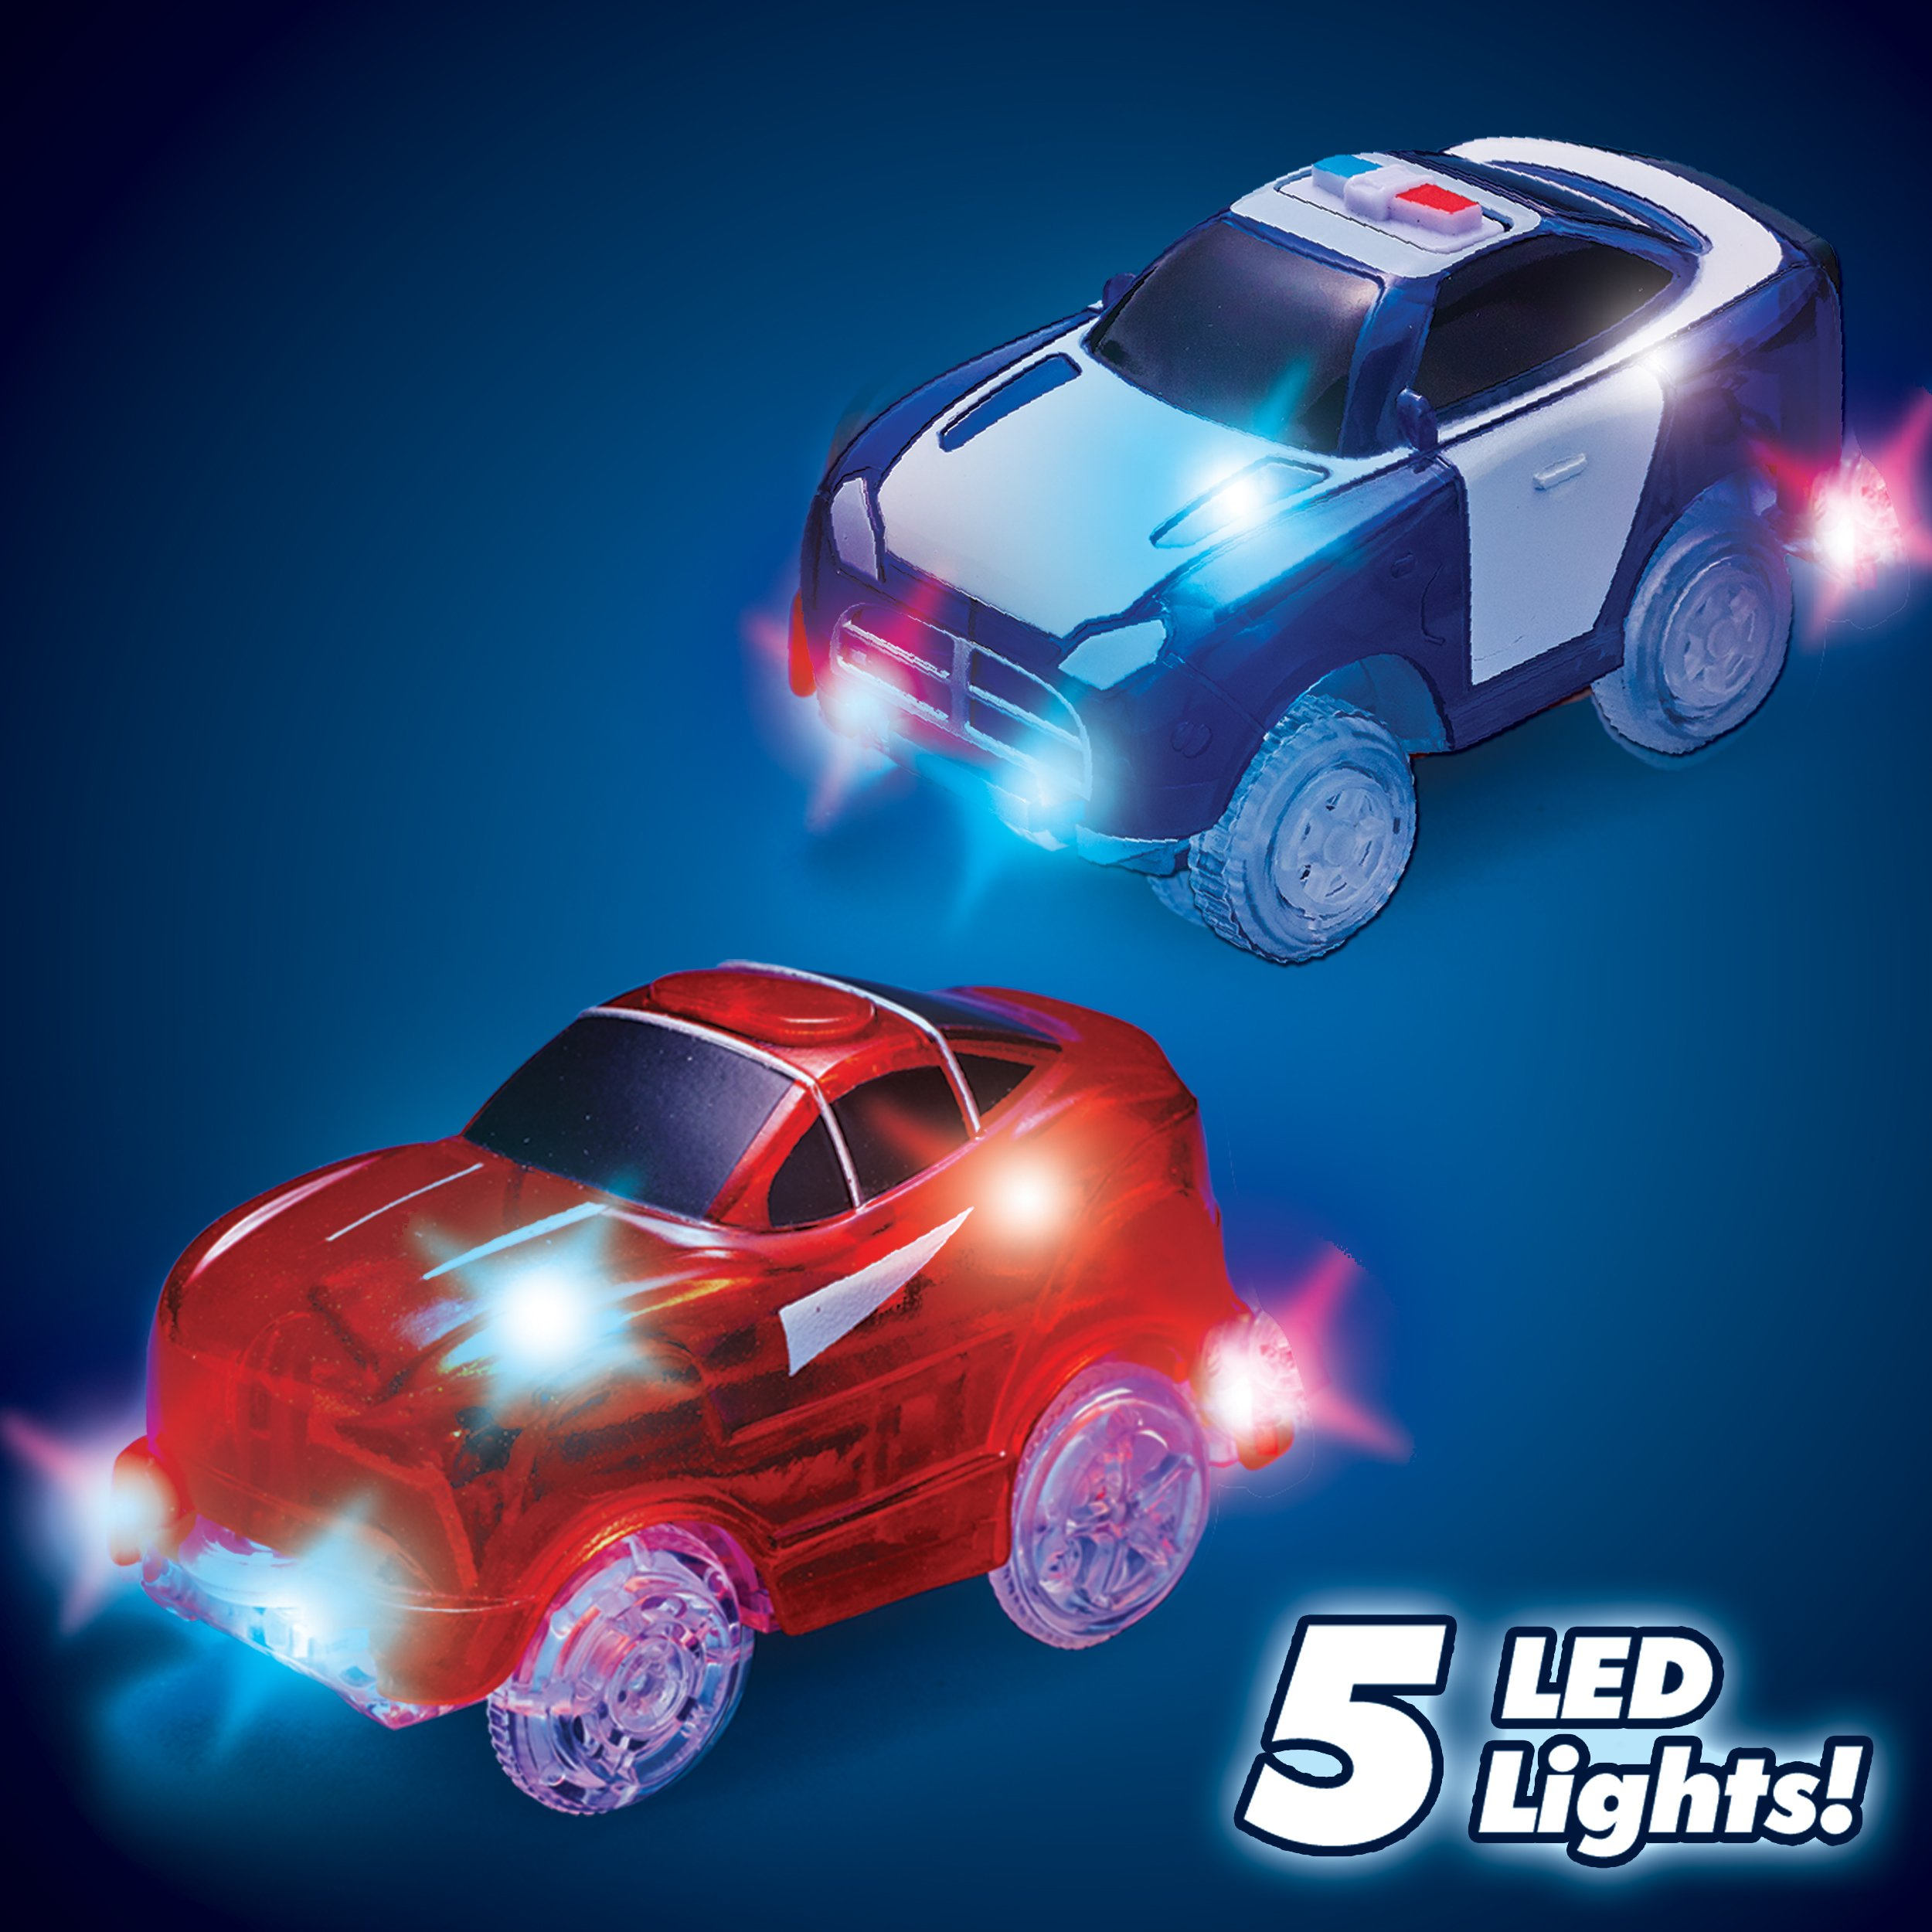 Ontel Magic Tracks Mega Set with 2 LED Race Car and 18 ft. of Flexible, Bendable Glow in The Dark Racetrack, As Seen on TV by Ontel (Image #2)